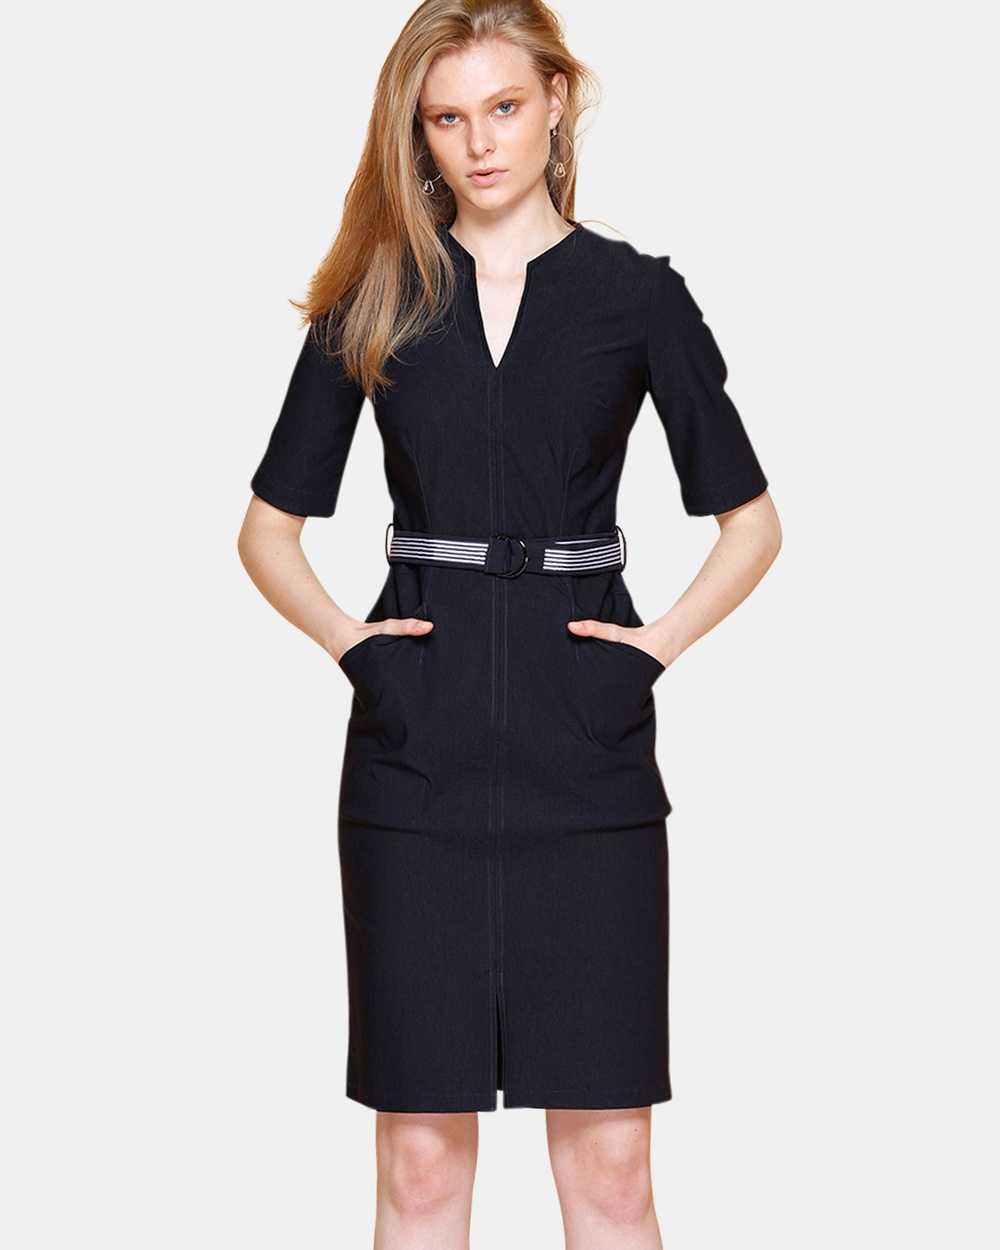 Buy SACHA DRAKE Navy Fitted 3-4 Sleeve Belted Dress -  shop SACHA DRAKE dresses online